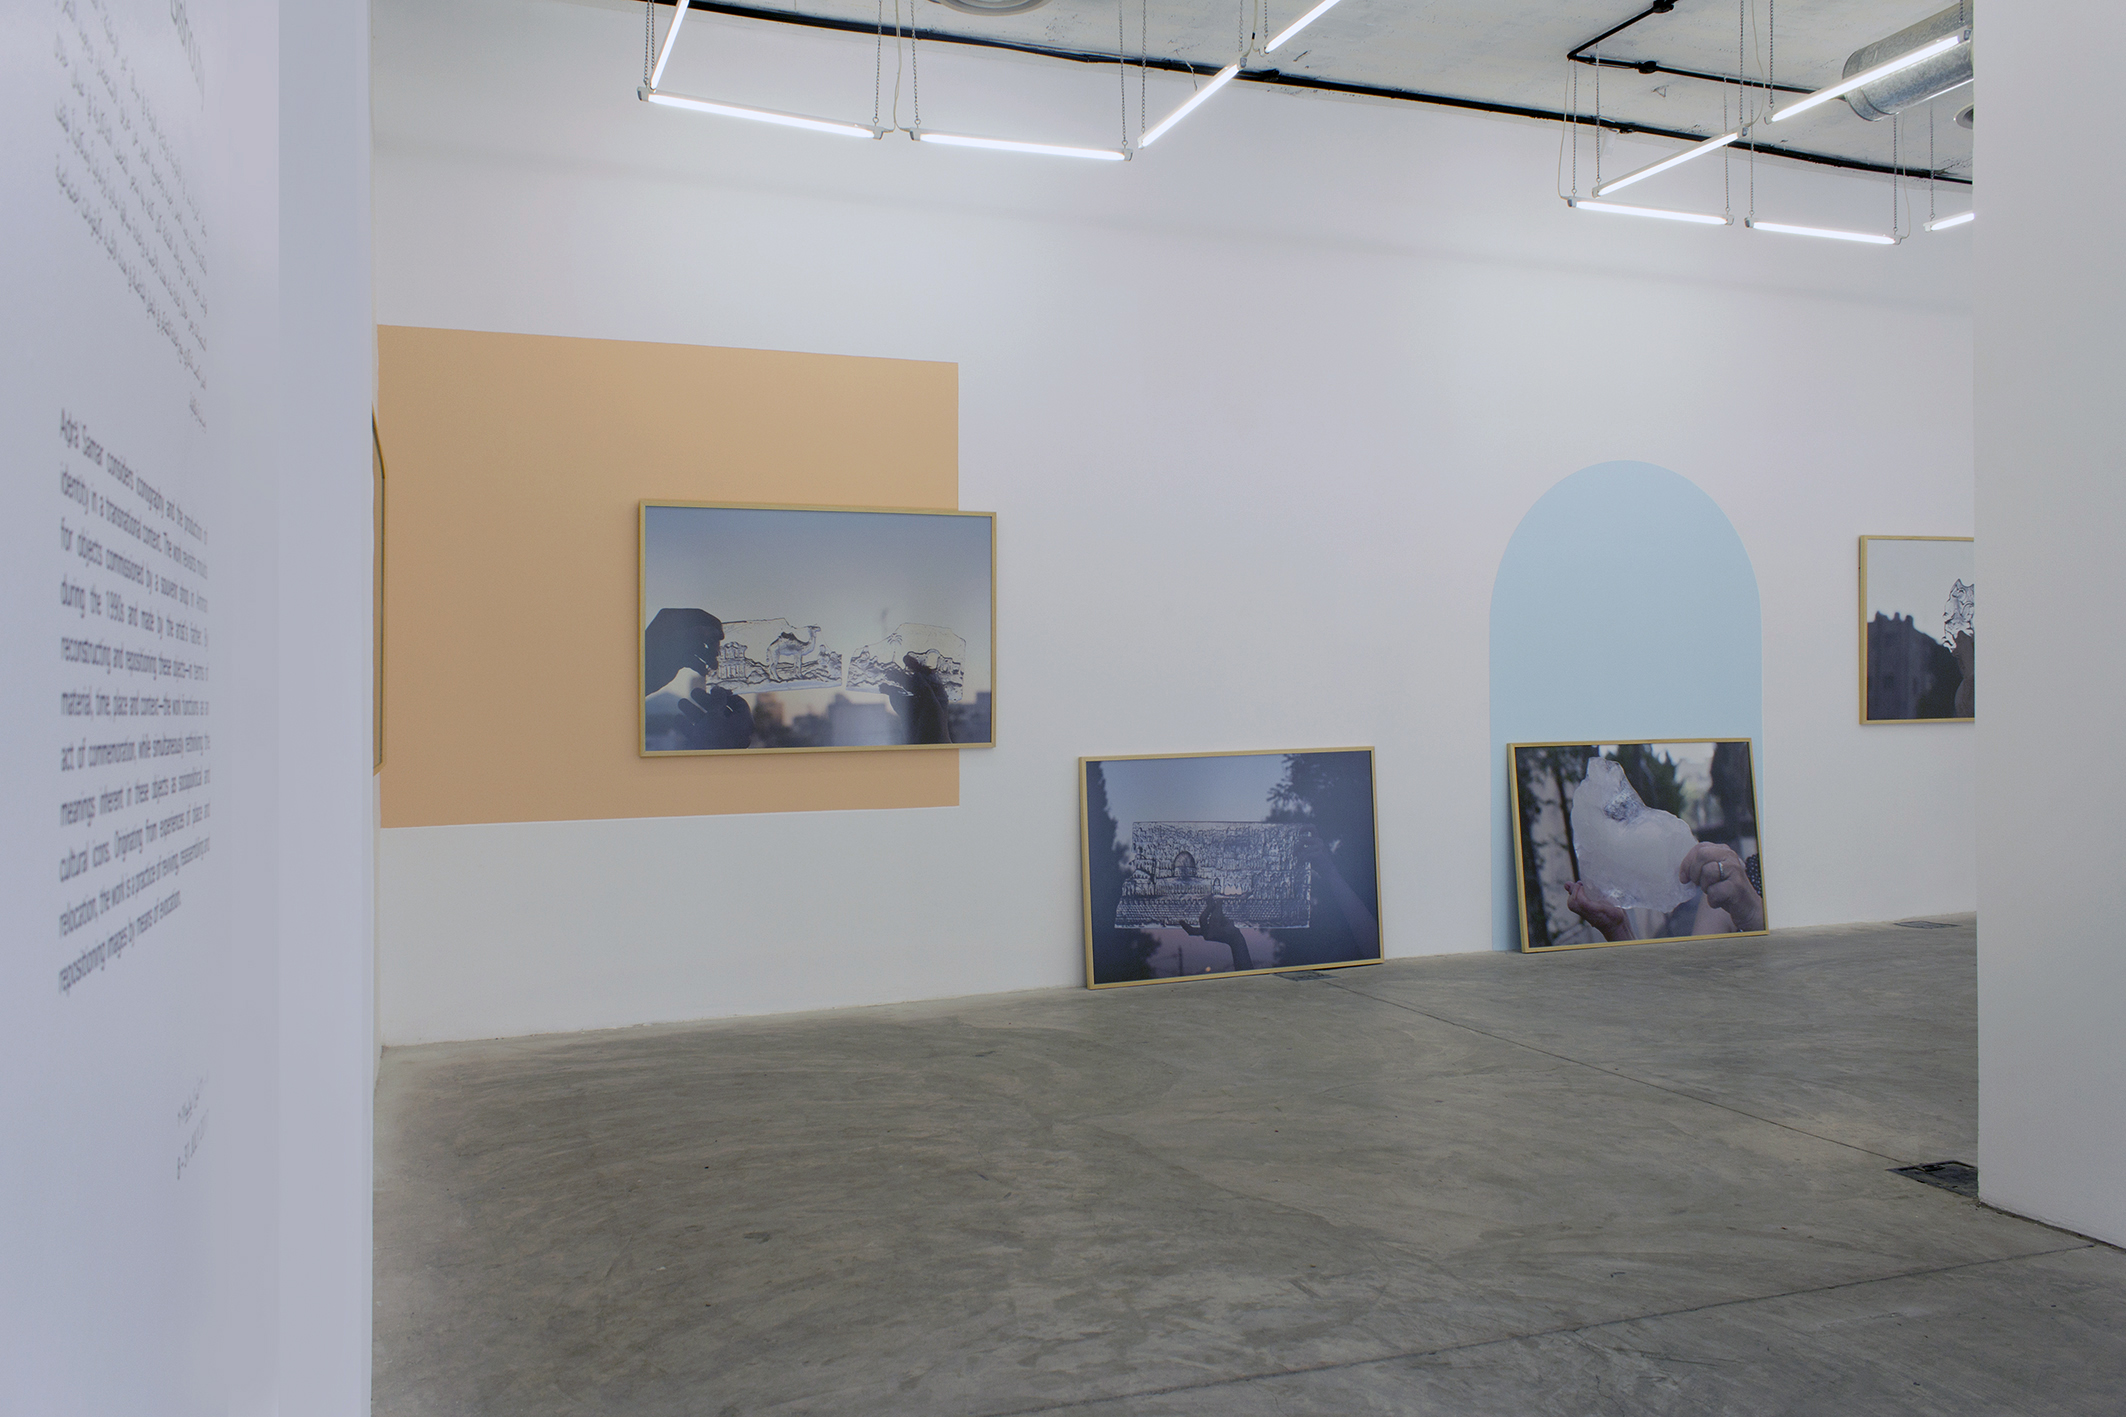 Aḏrāʾ Samar,  installation view at The Lab, Darat Al Funun / Courtesy of Darat al Funun - The Khalid Shoman Foundation.